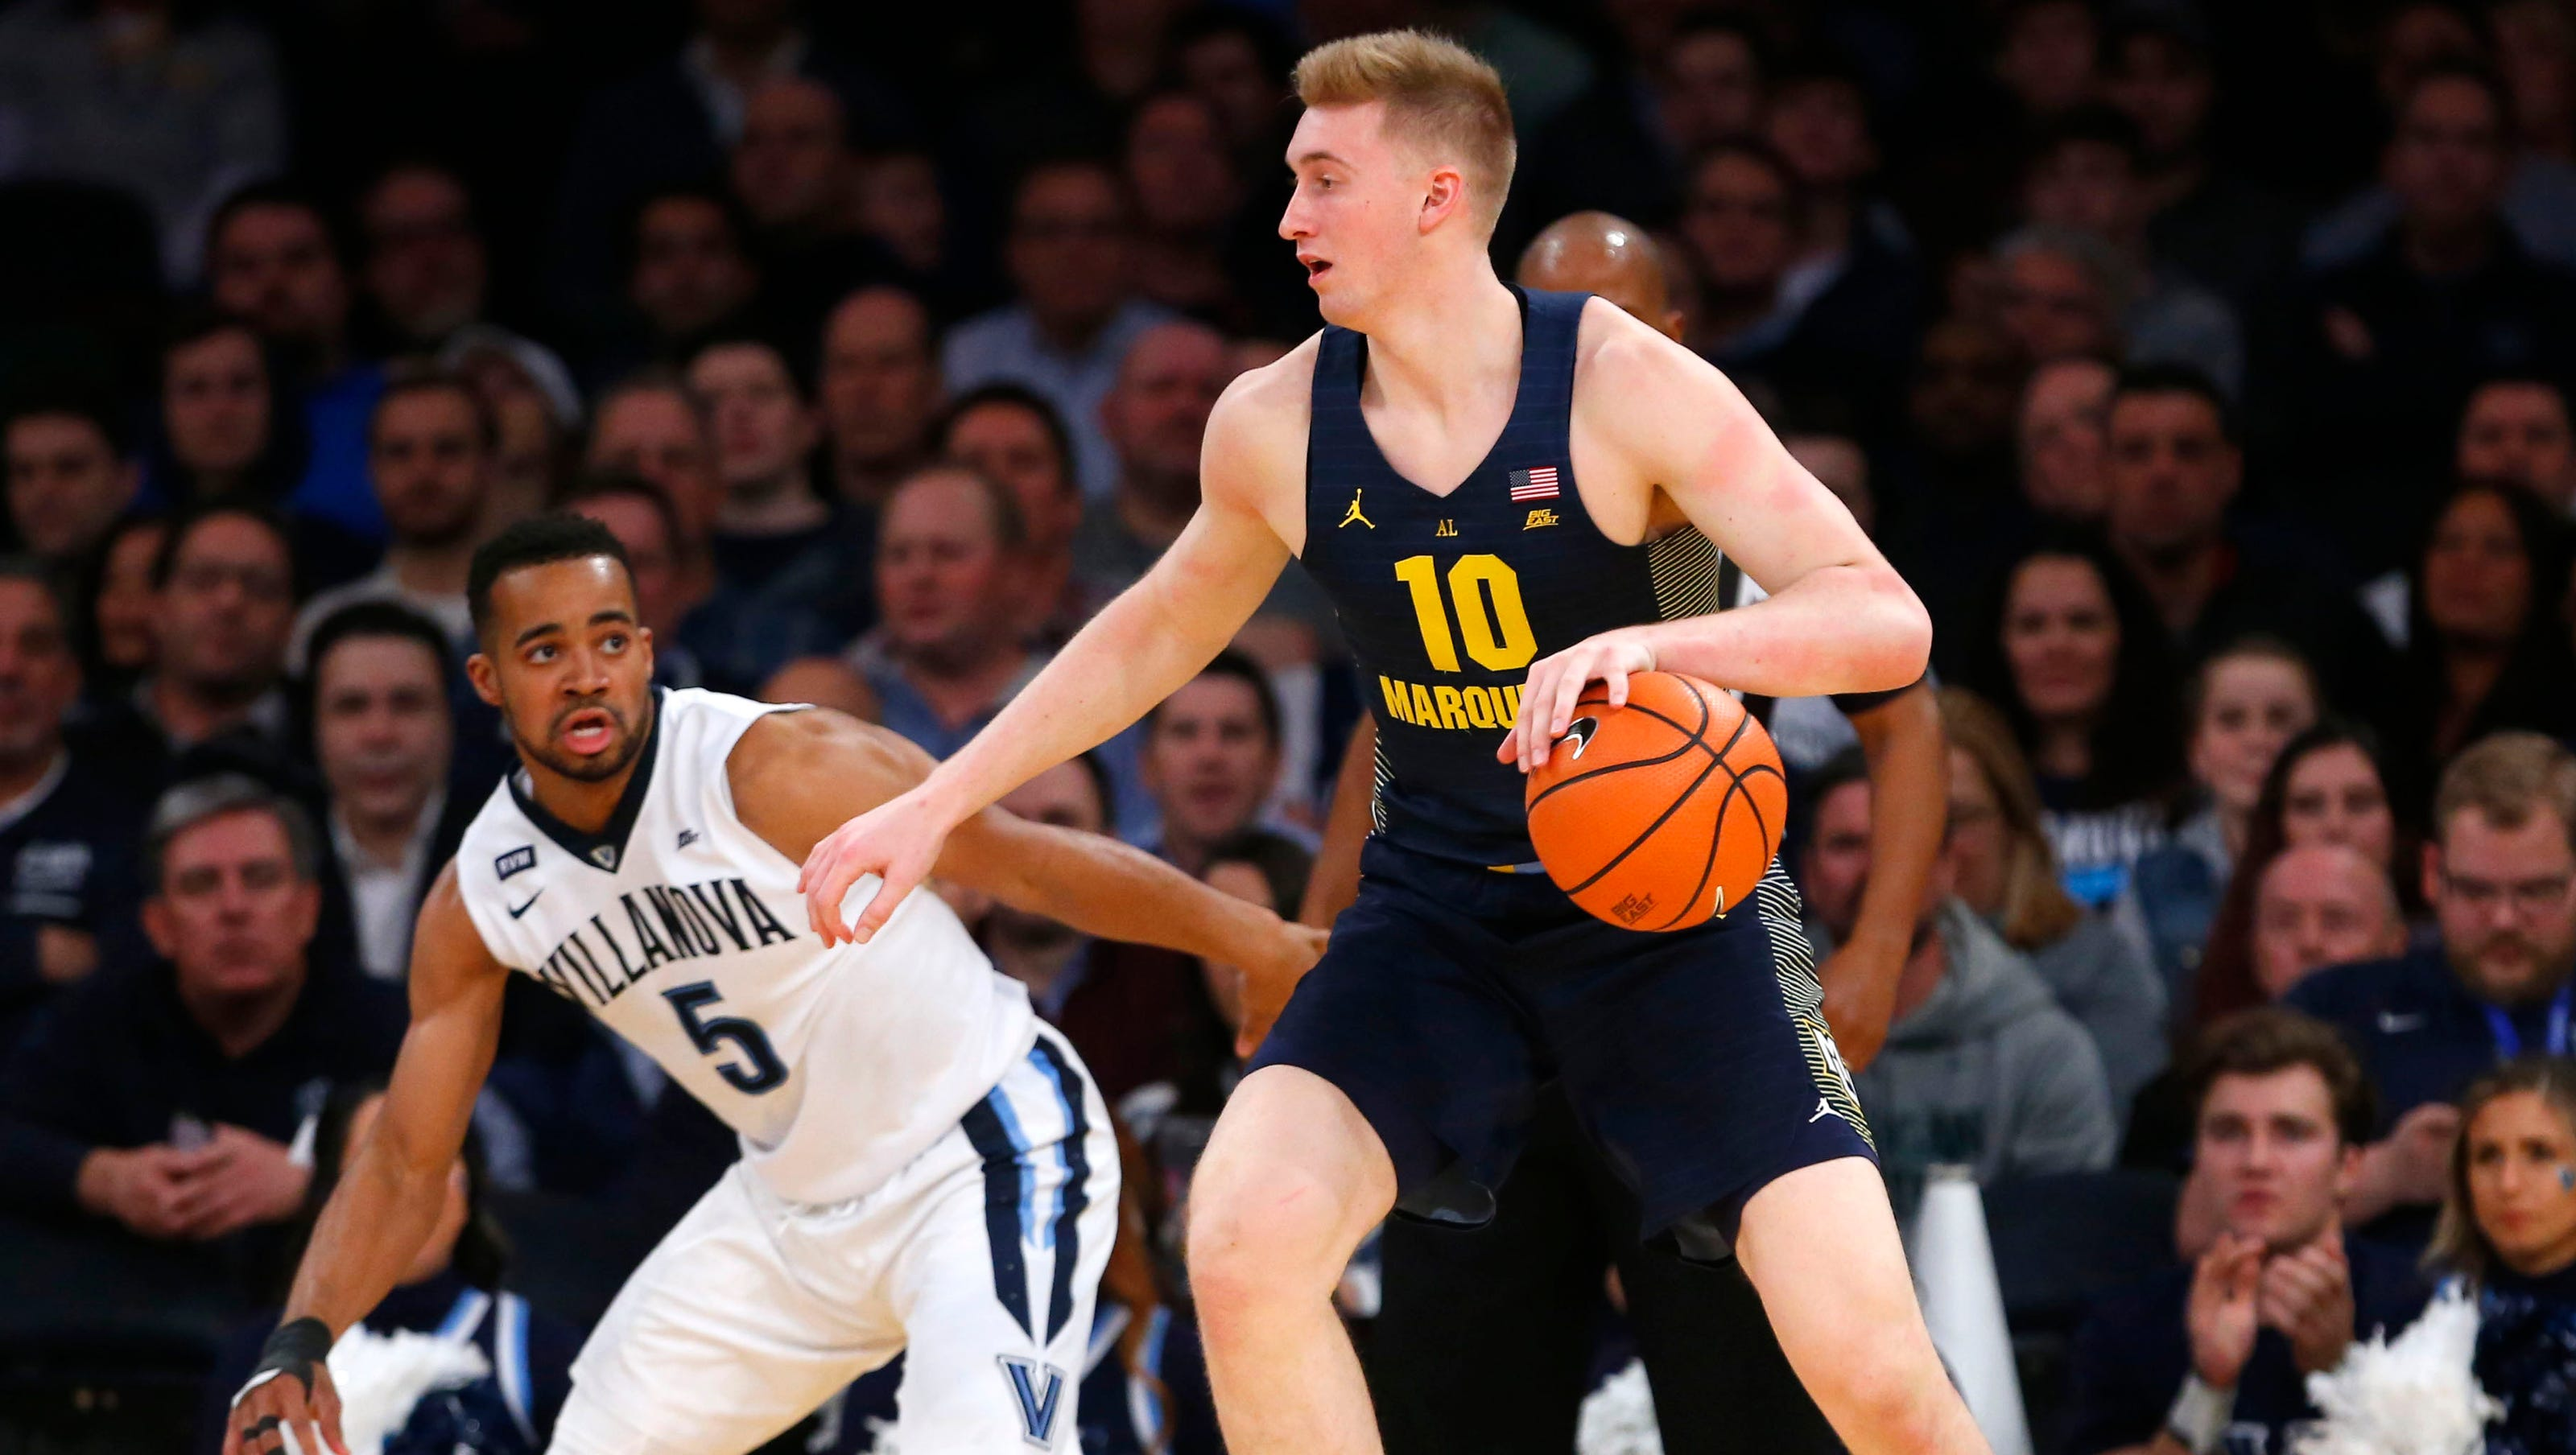 wisconsin high-school products competing in di men's basketball